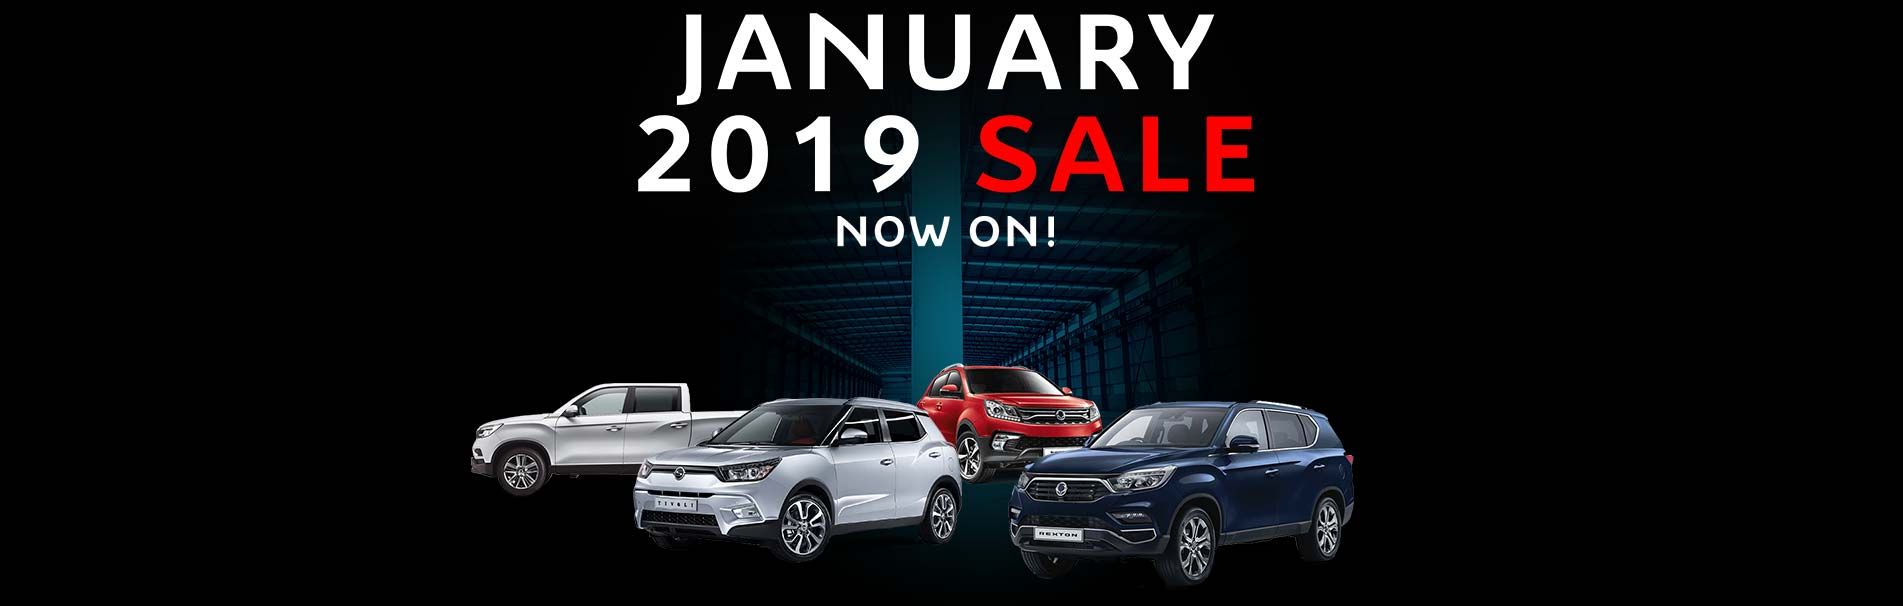 ssangyong-january-2019-car-sale-berkshire-now--on-sli